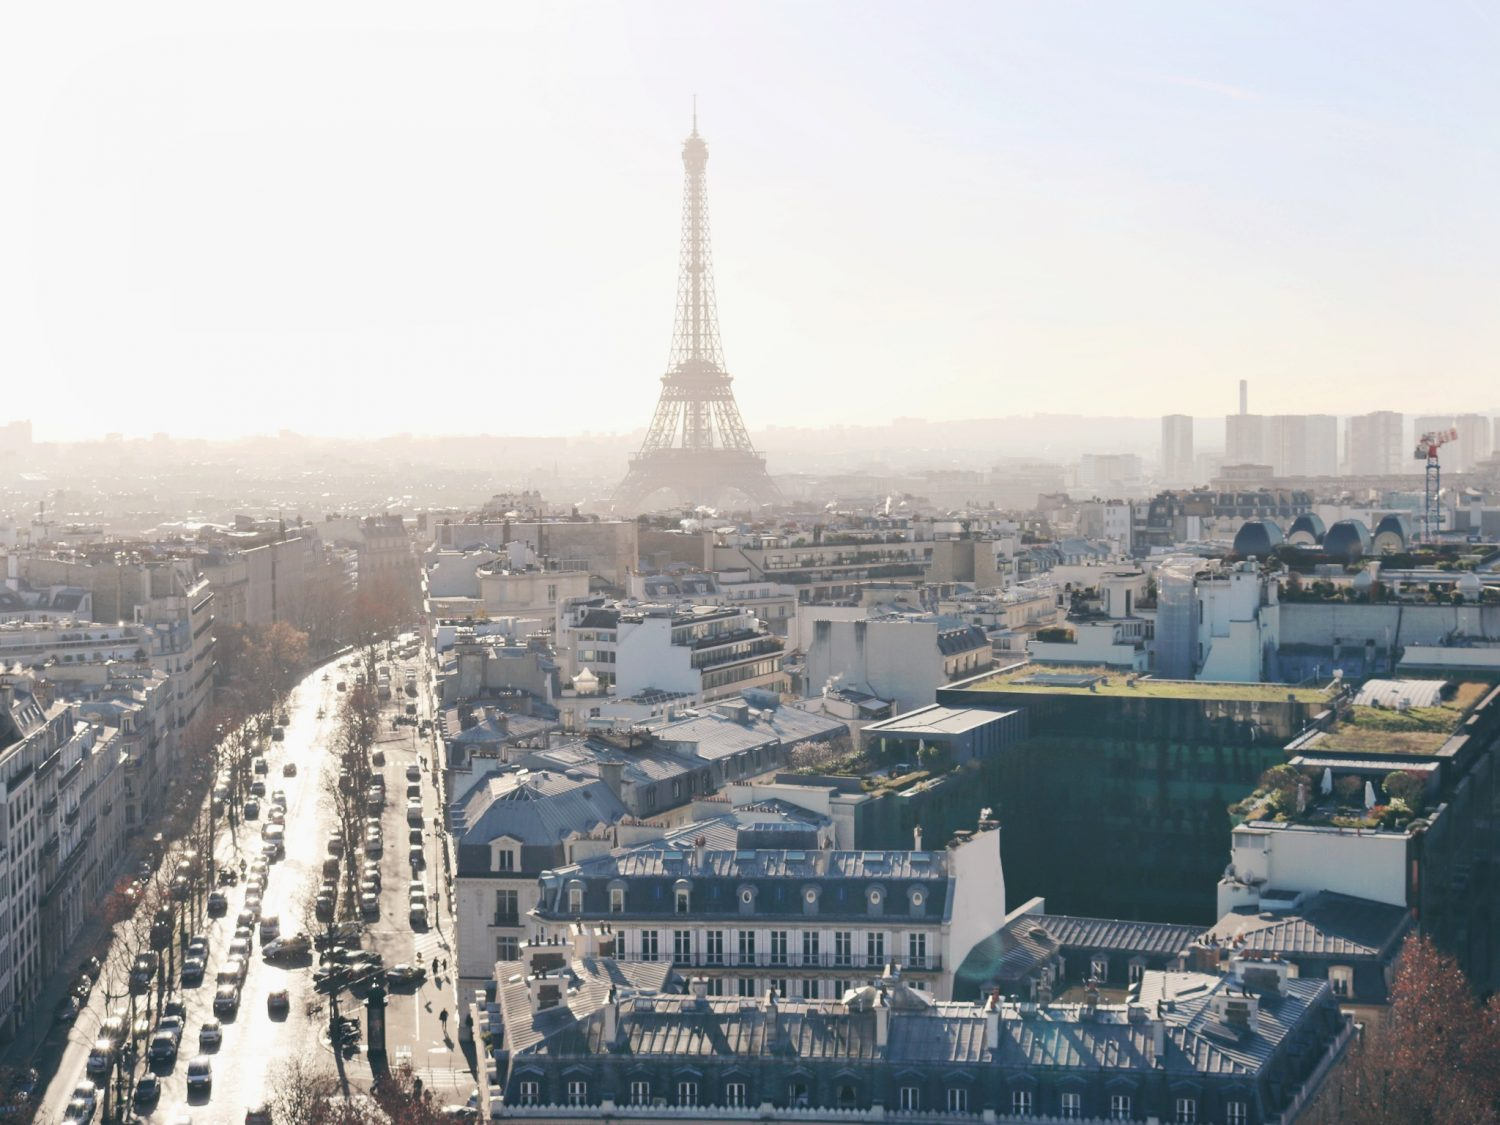 Views of the Eiffel Tower from the Arc de Triomphe in Paris